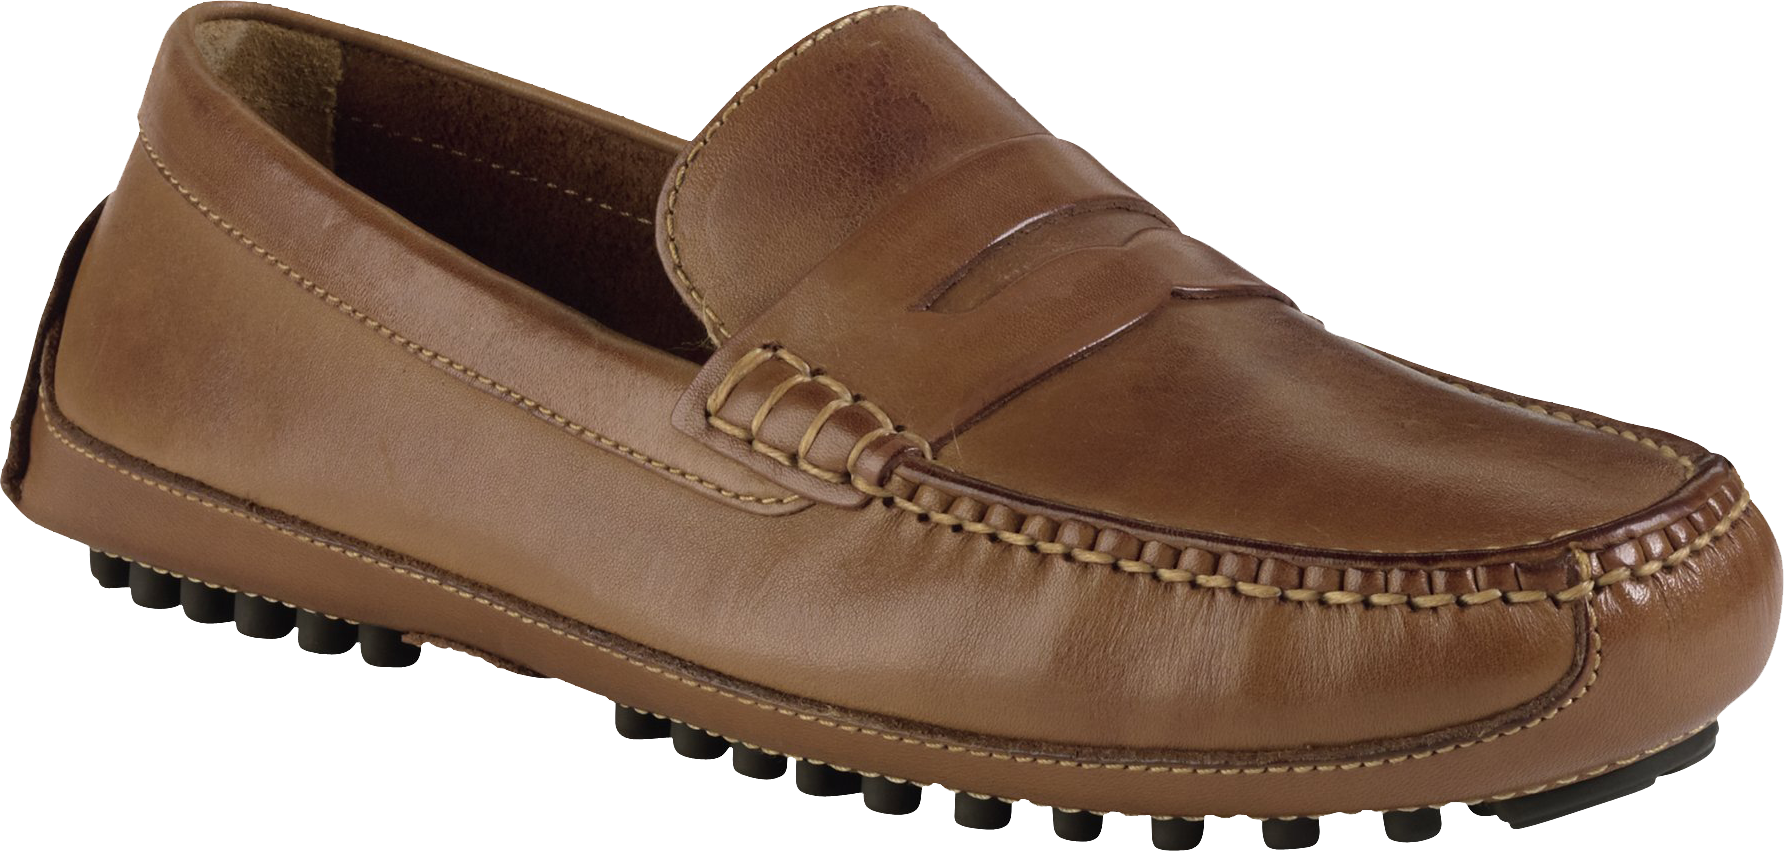 Cole Haan Grant Canoe Penny Loafers CLEARANCE - Flash Sale Shoes   Jos A Bank